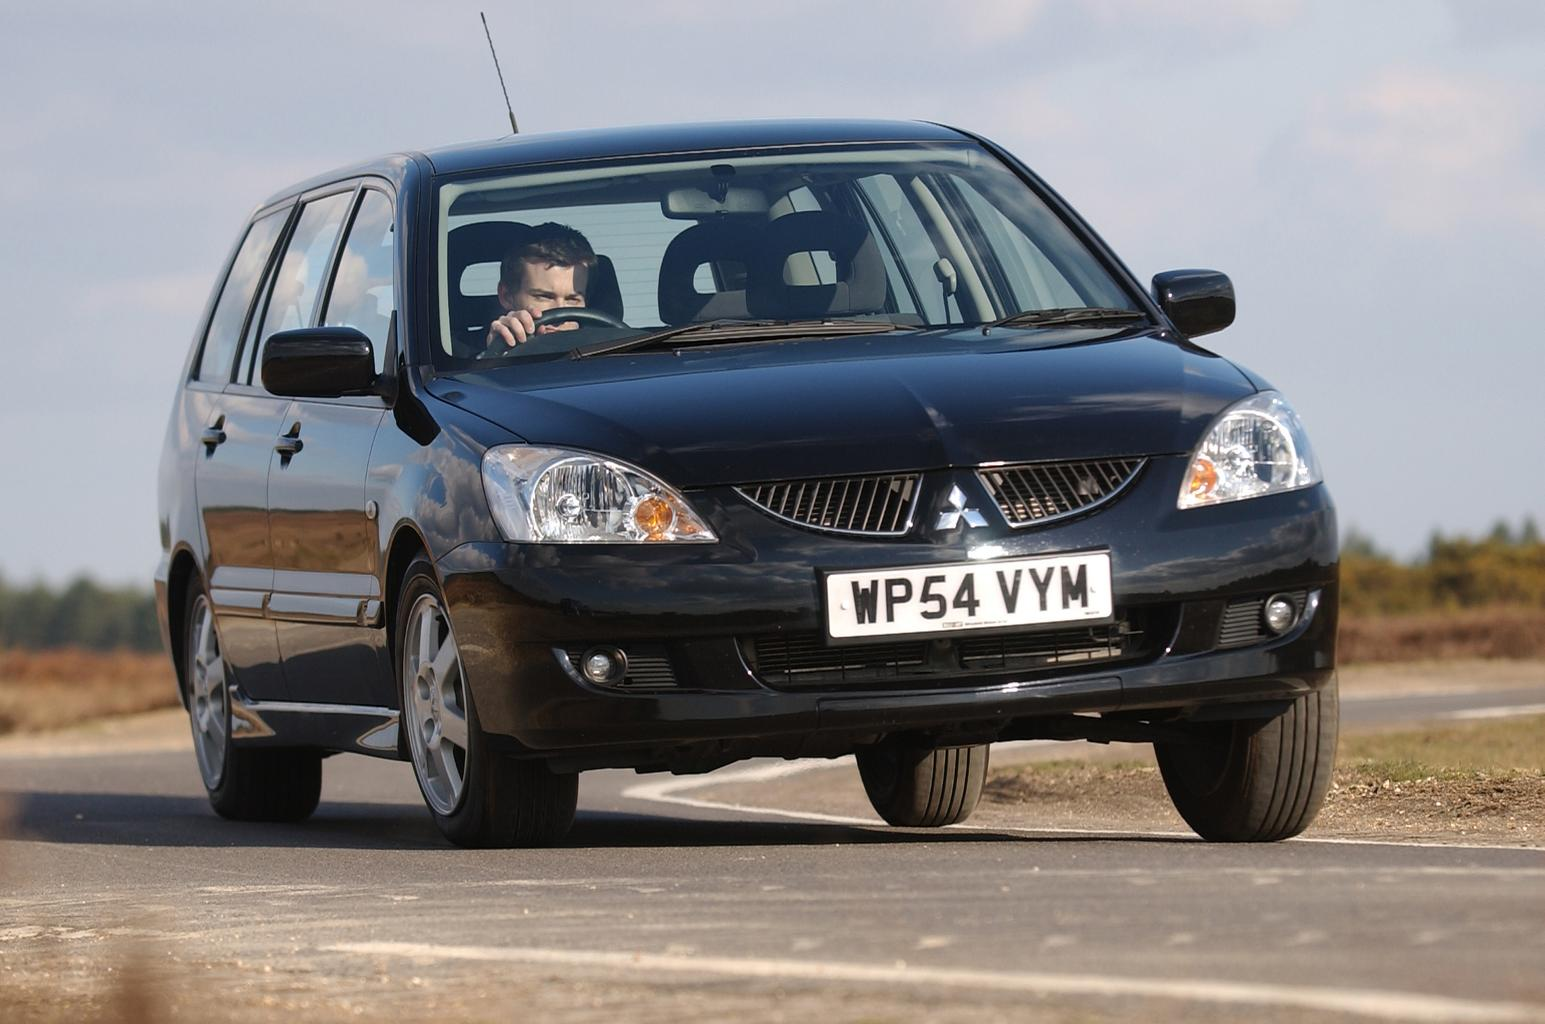 Best used estate cars for less than £10,000 (and the ones to avoid)